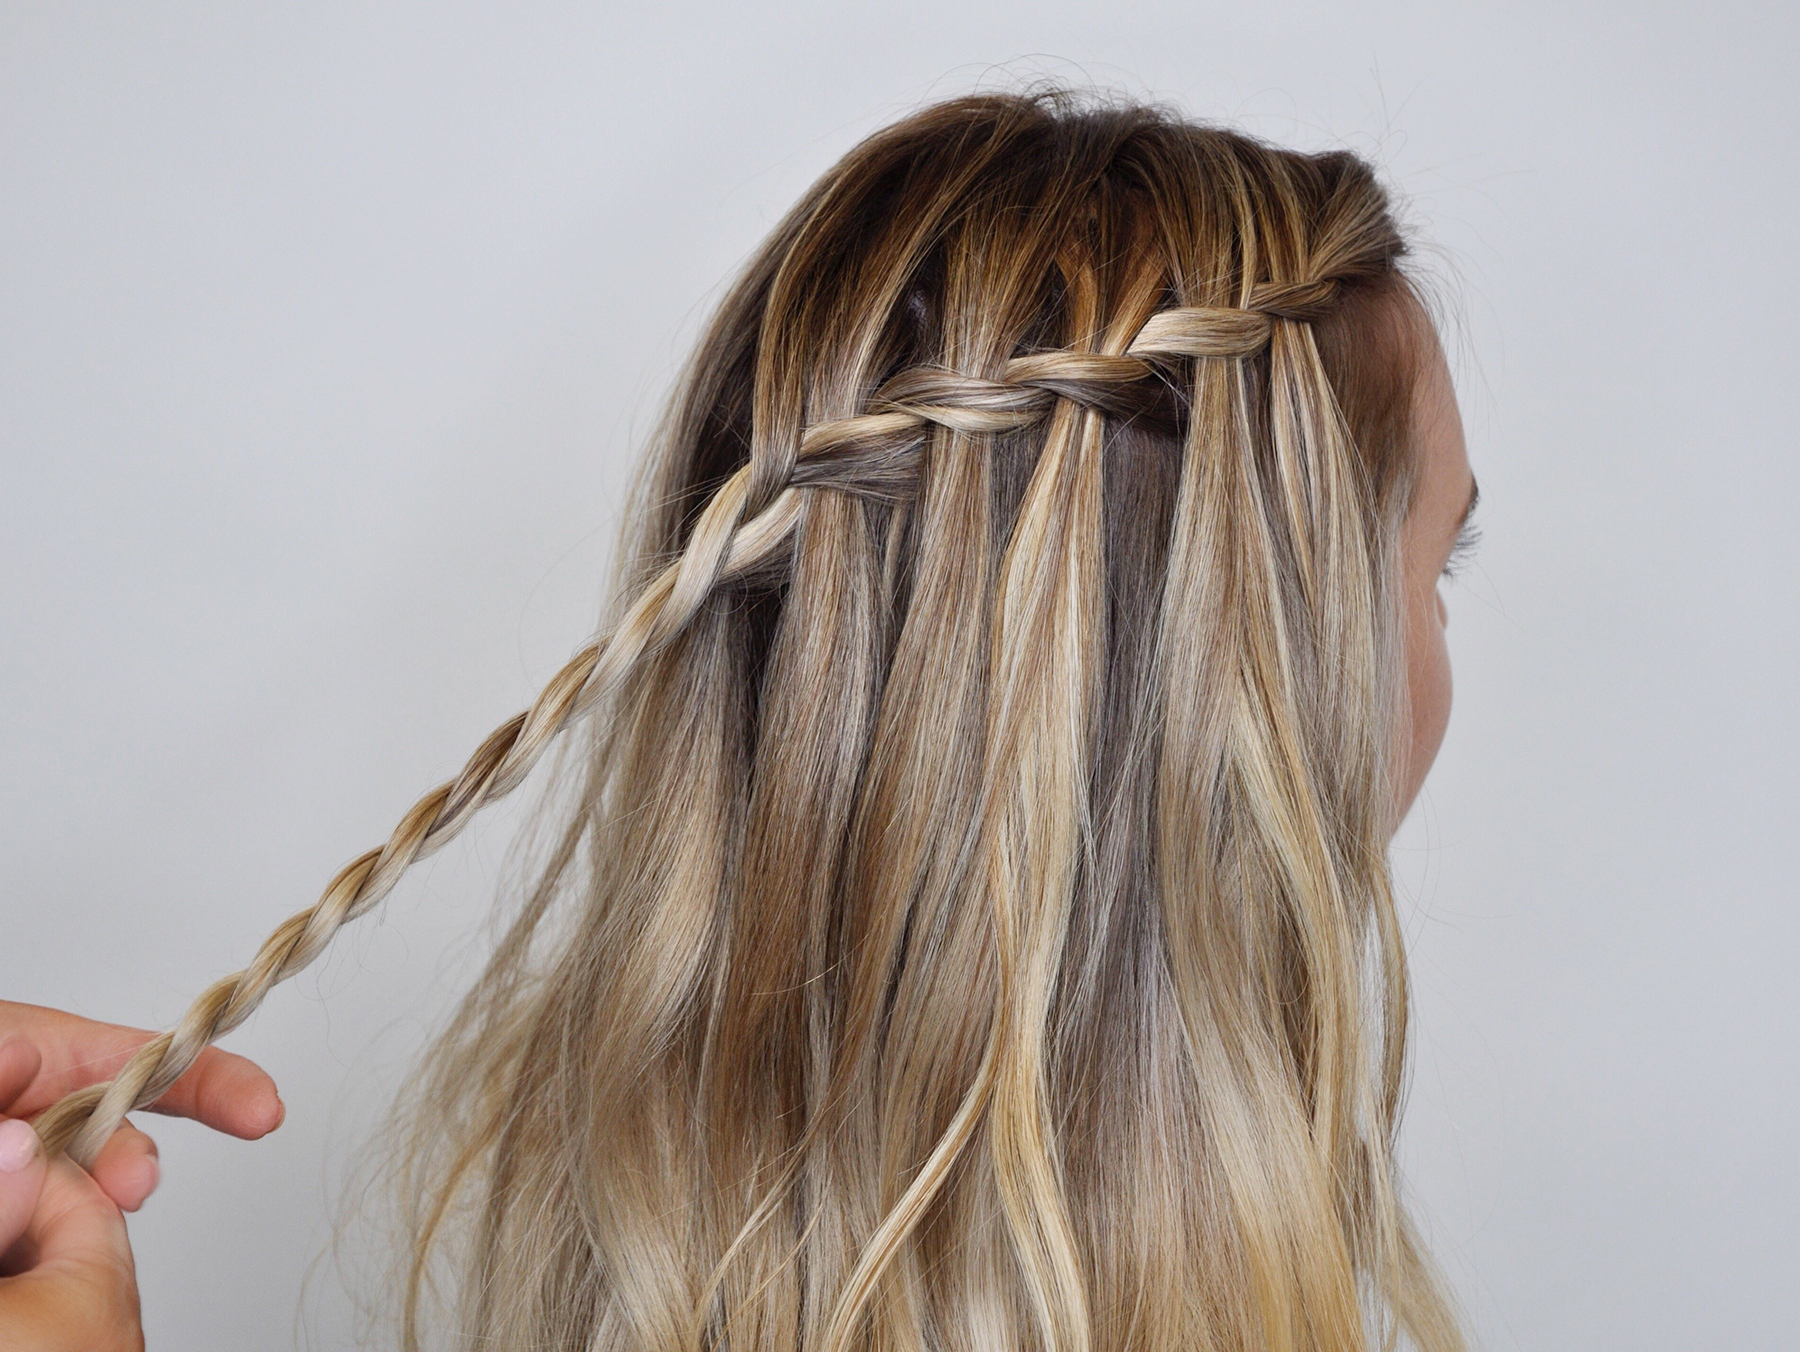 Real Simple Pertaining To Latest Waterfall Braids Hairstyles (View 9 of 20)